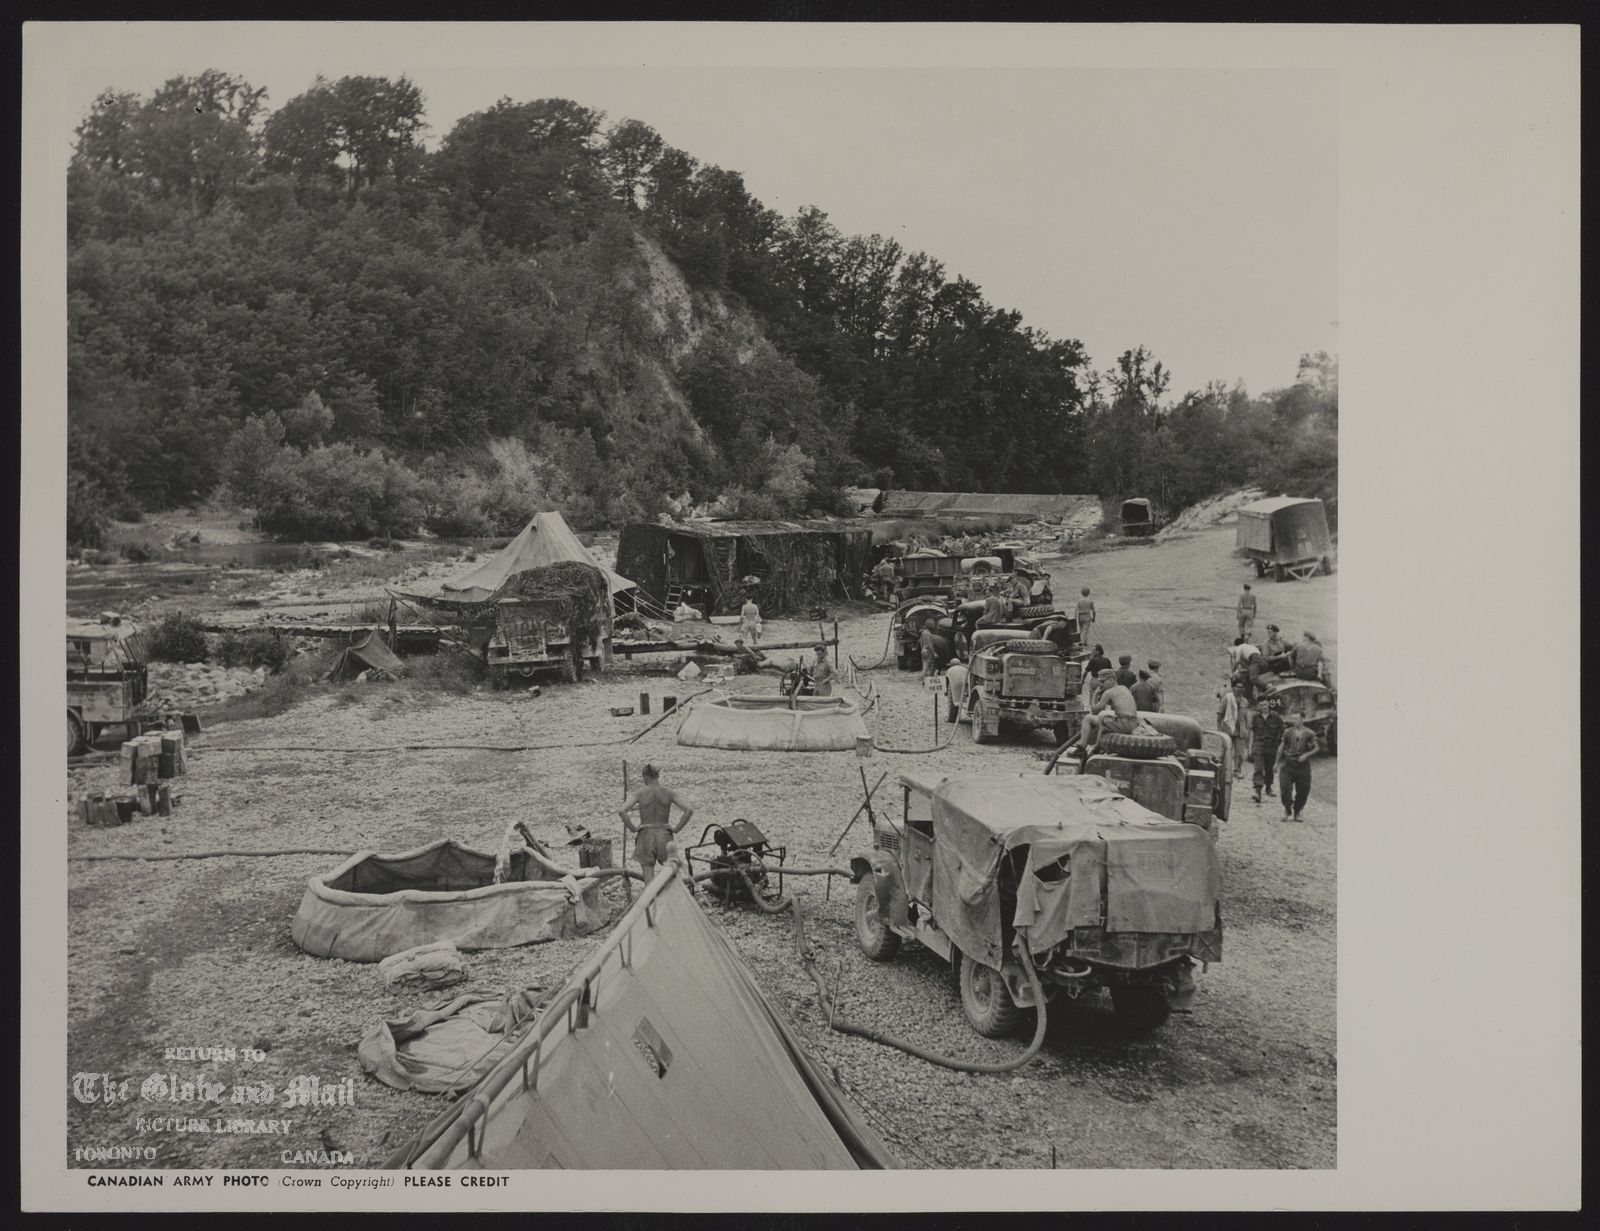 WORLD WAR II FRESH WATER PROBLEM OF CANADIAN'S IN ITALY View of a water purifying unit of the Canadian Army on a Sacco River waterpoint near Pofi in Italy. Pumps are used to bring the water to the purifiers and canvas vats. Water trucks are lined up here for their daily ration for their respective units. (Canadian Army Overseas Photo)